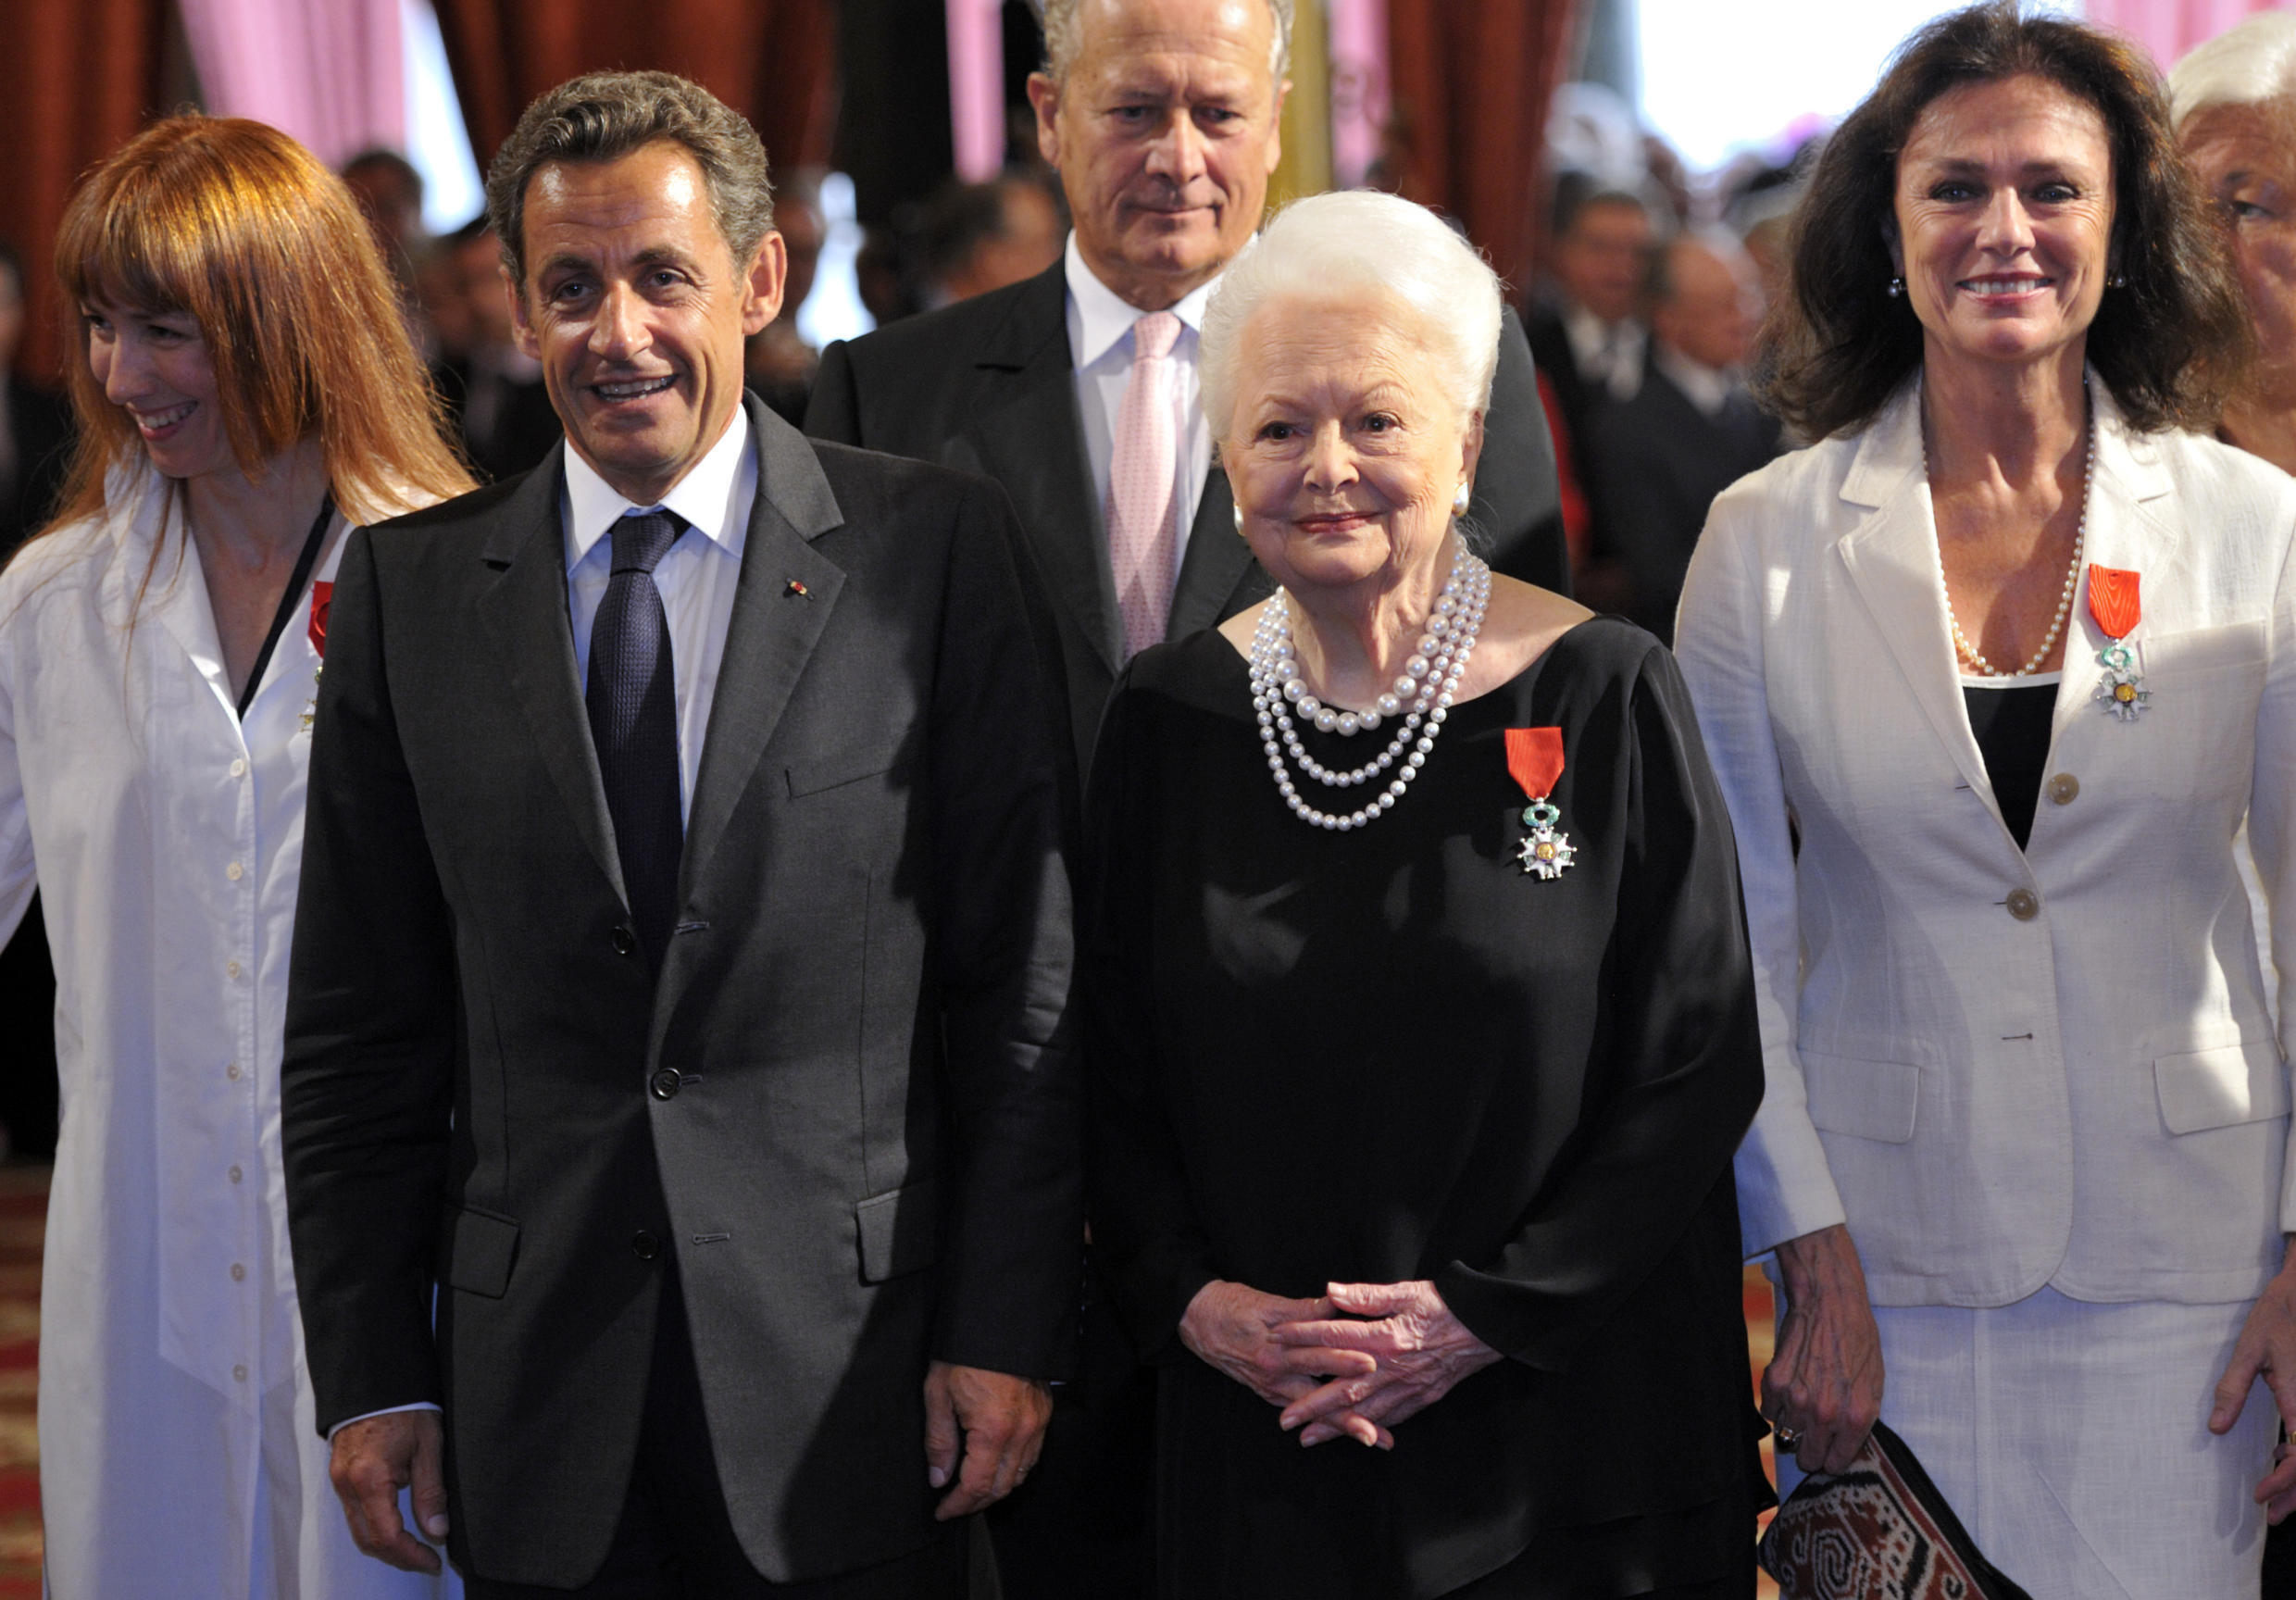 Olivia de Havilland (second from right) poses with former French president Nicolas Sarkozy and actress Jacqueline Bisset (right) after receiving the Legion of Honour in Sepetember 2010.